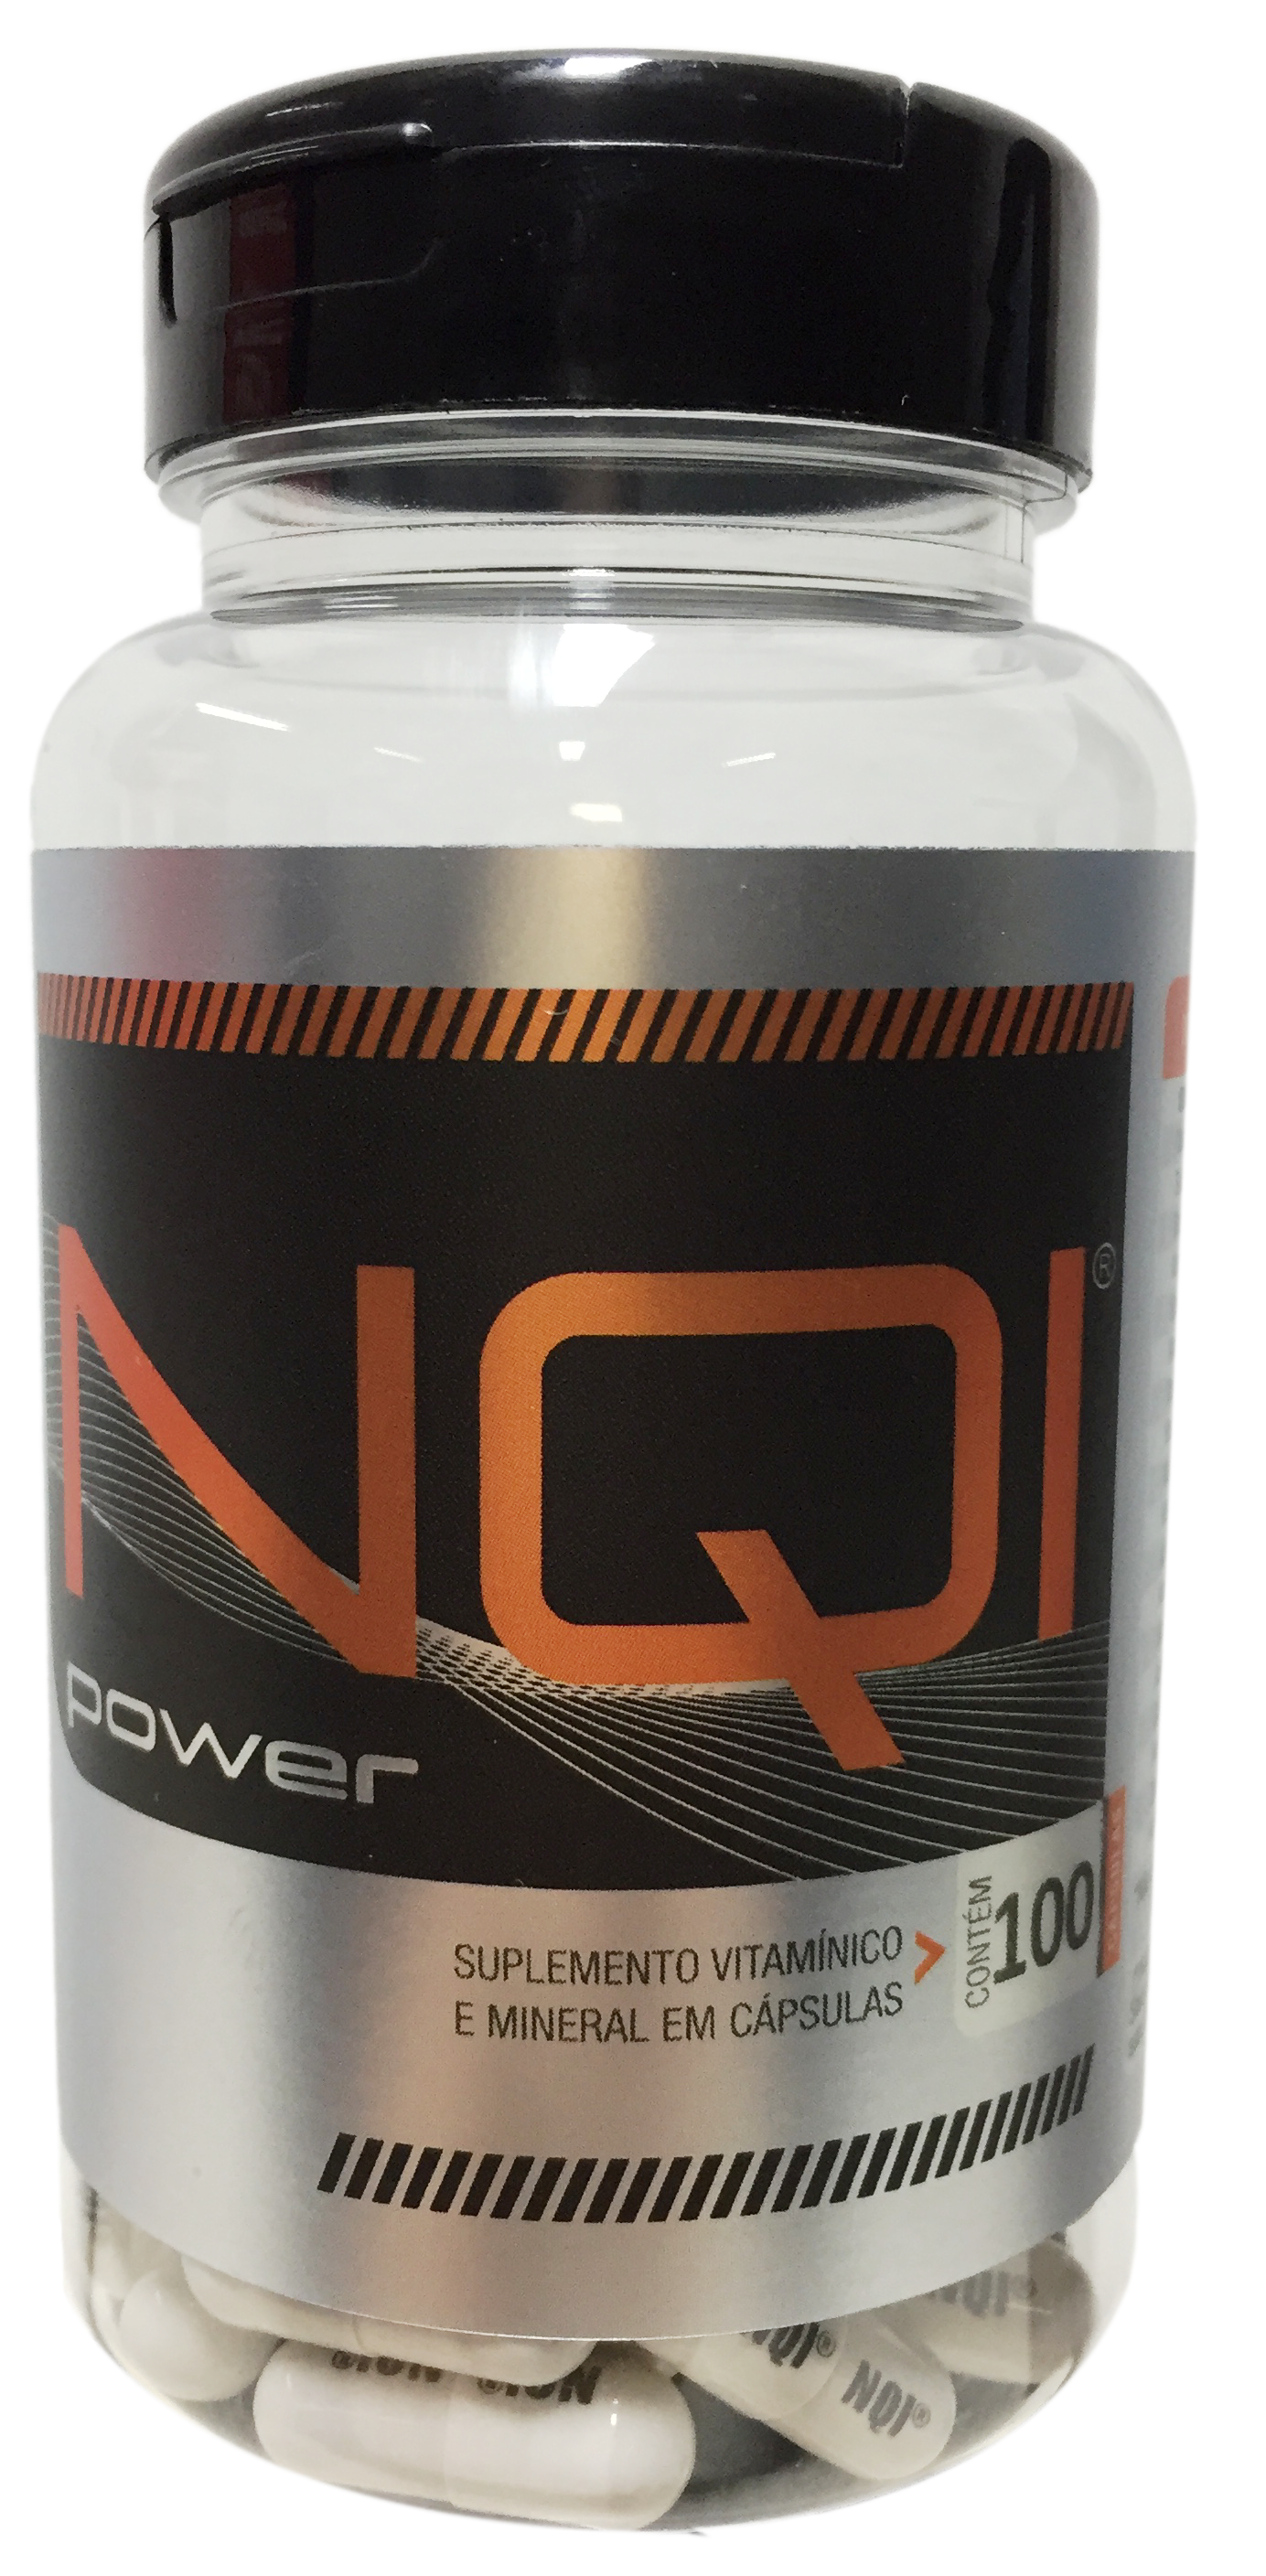 NQI POWER c/ 100 cápsulas